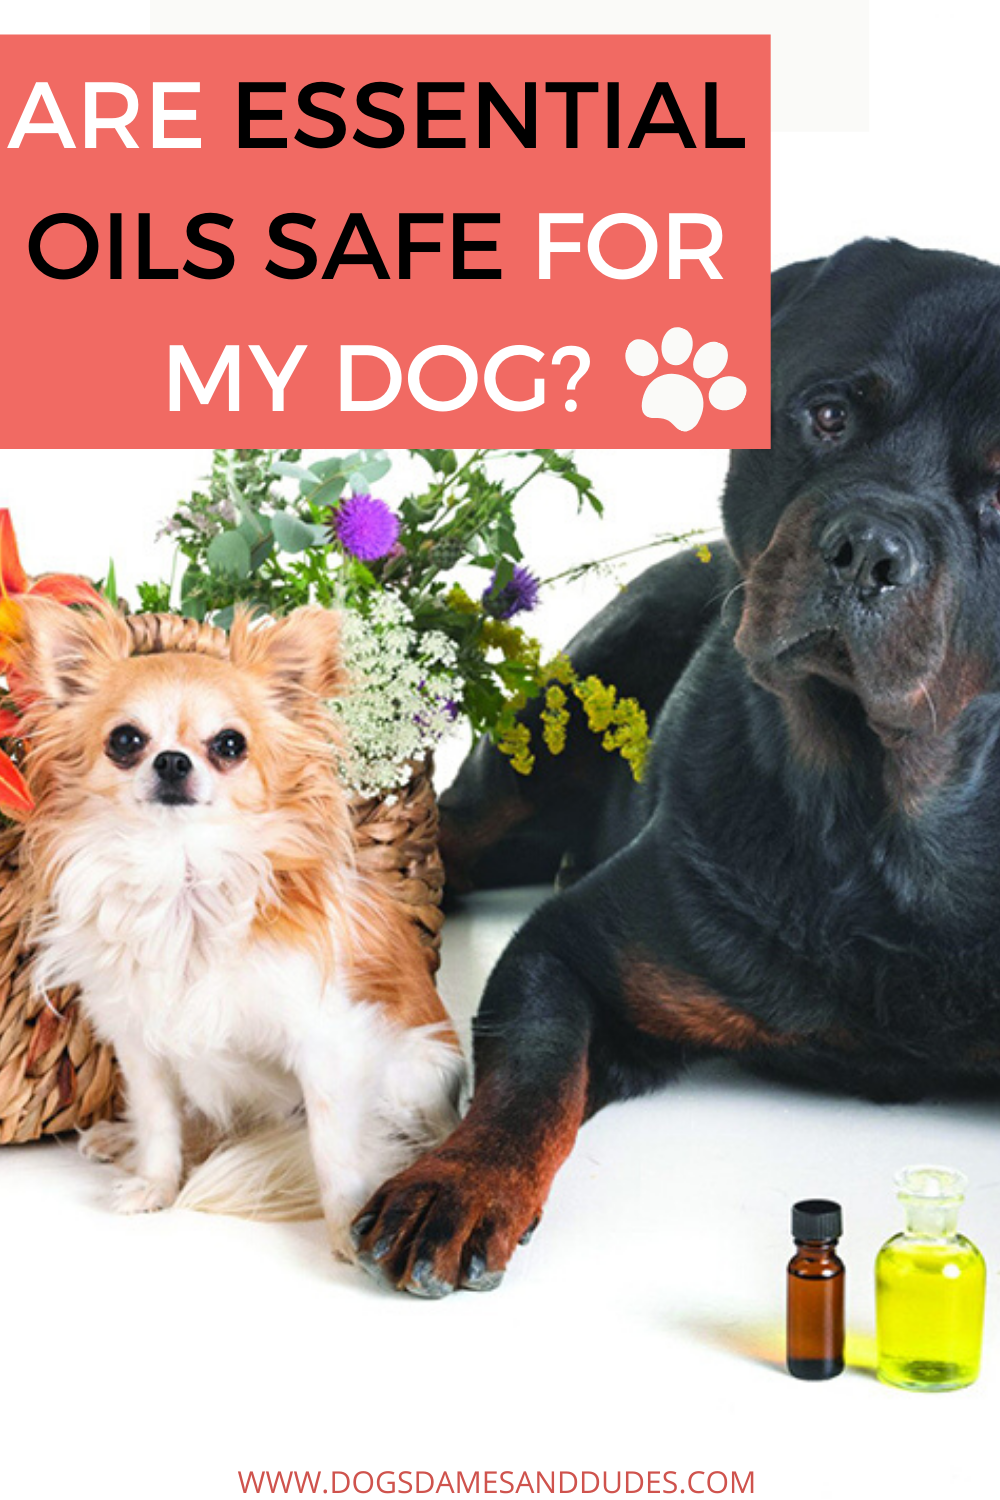 Are Essential Oils Safe For My Dog Our Tips With Top 4 Essential Oils For Your Dog In 2020 Essential Oils Dogs Are Essential Oils Safe Oils For Dogs